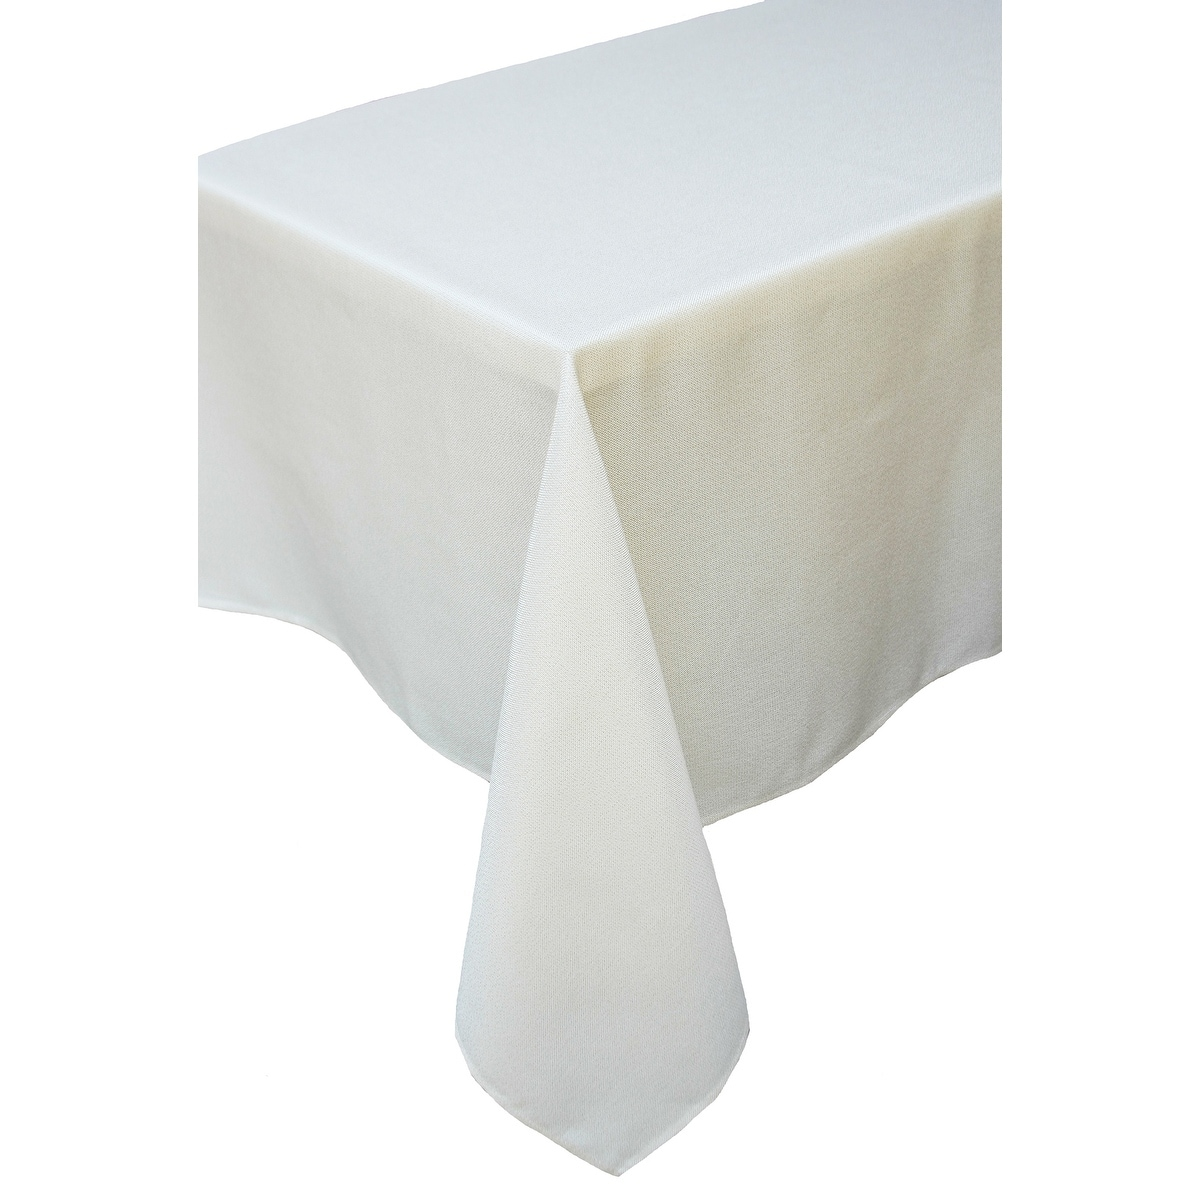 Gala Glistening Easy Care Solid Color Tablecloth, 72 by 108-Inch, Ivory, Beige Off-White